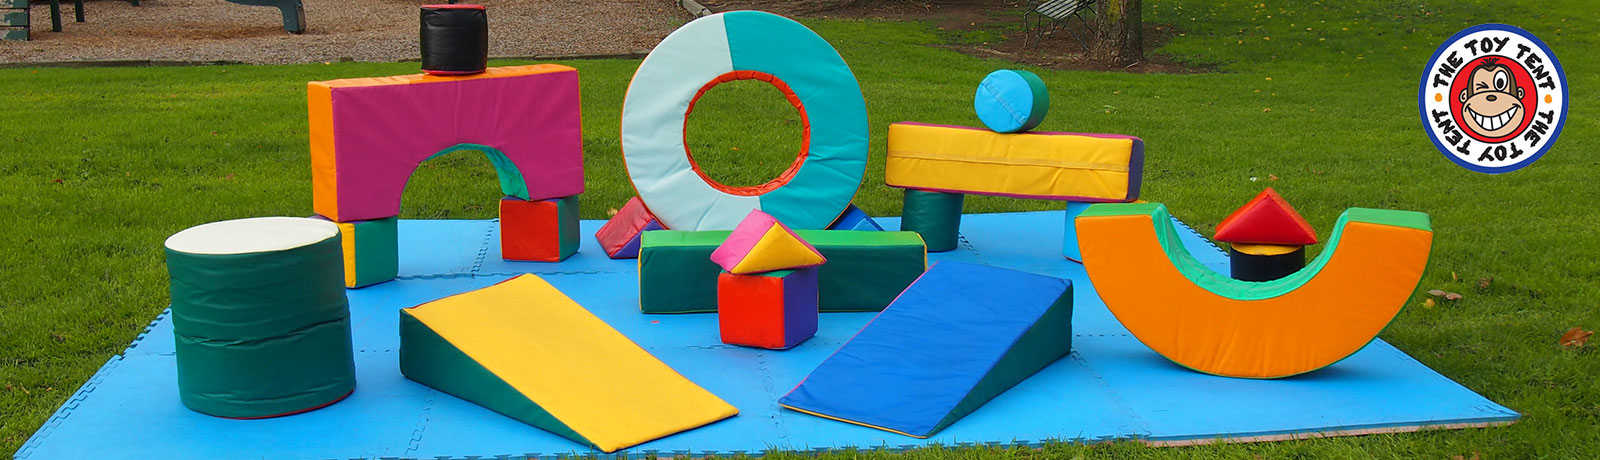 soft-play-sets-banner